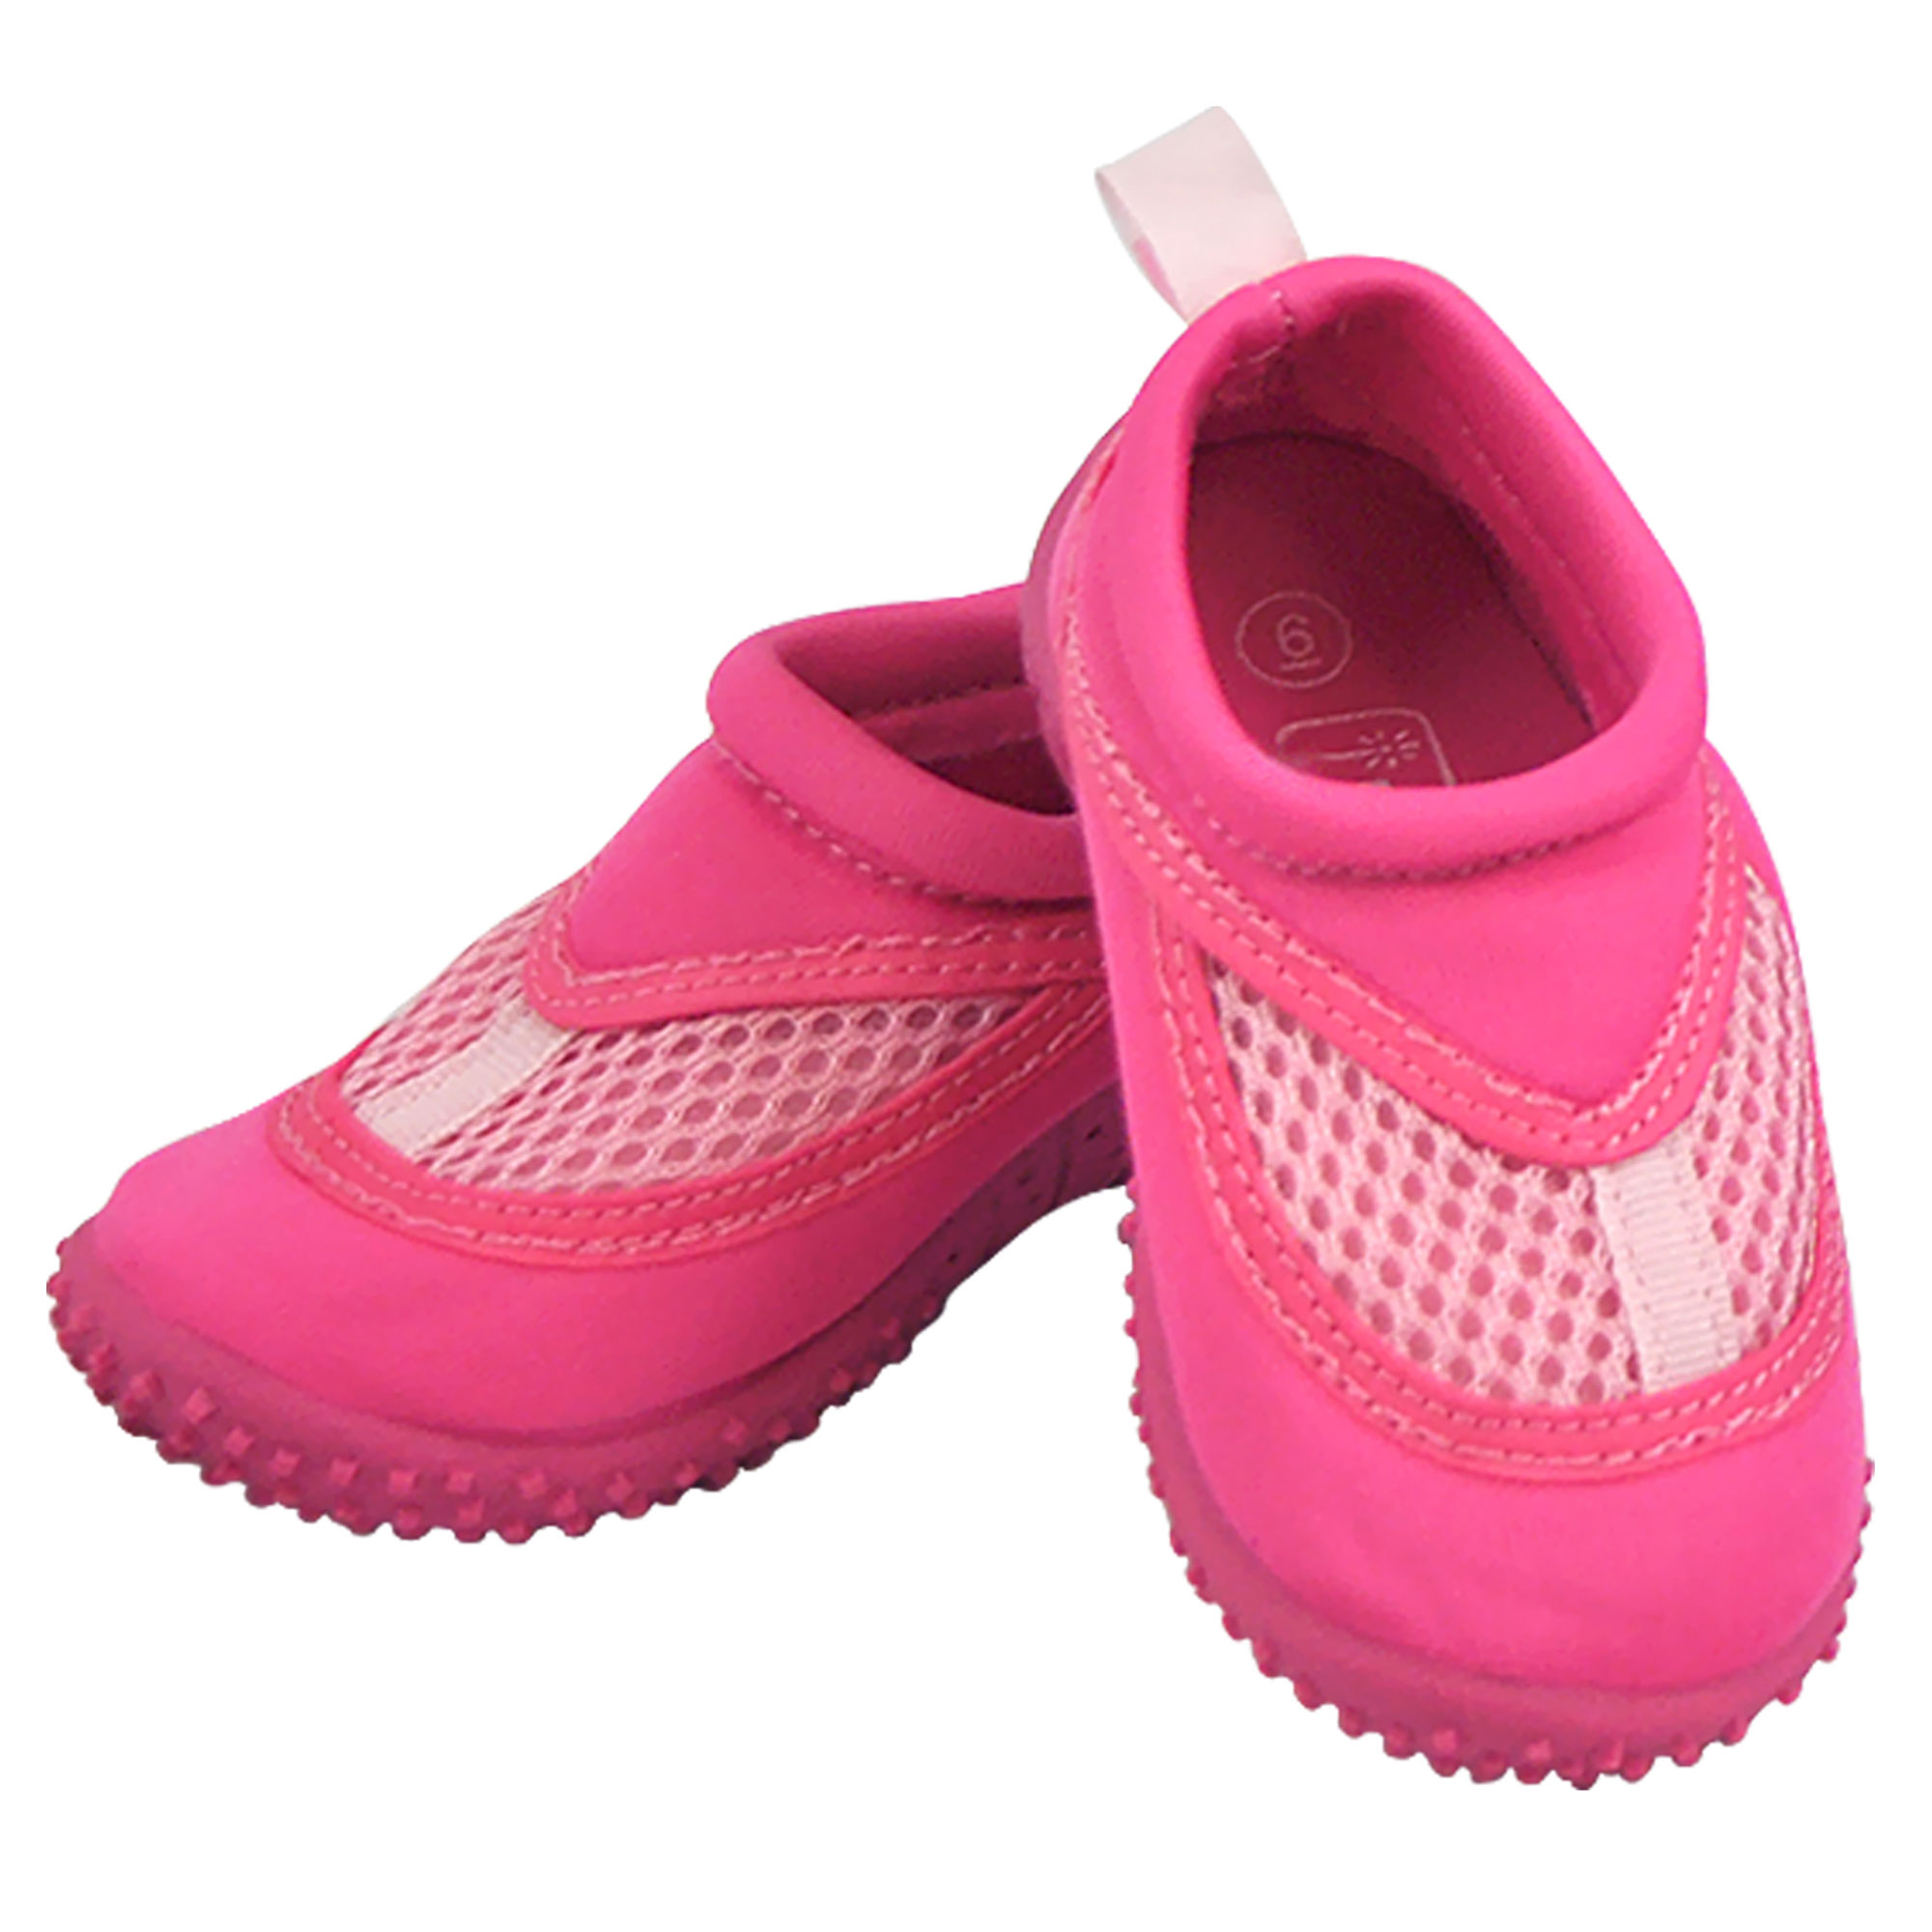 Iplay Baby Girls Sand and Water Swim Shoes Kids Aqua Socks for Babies, Infants, Toddlers, and Children Hot Pink Size 7 / Zapatos De Agua